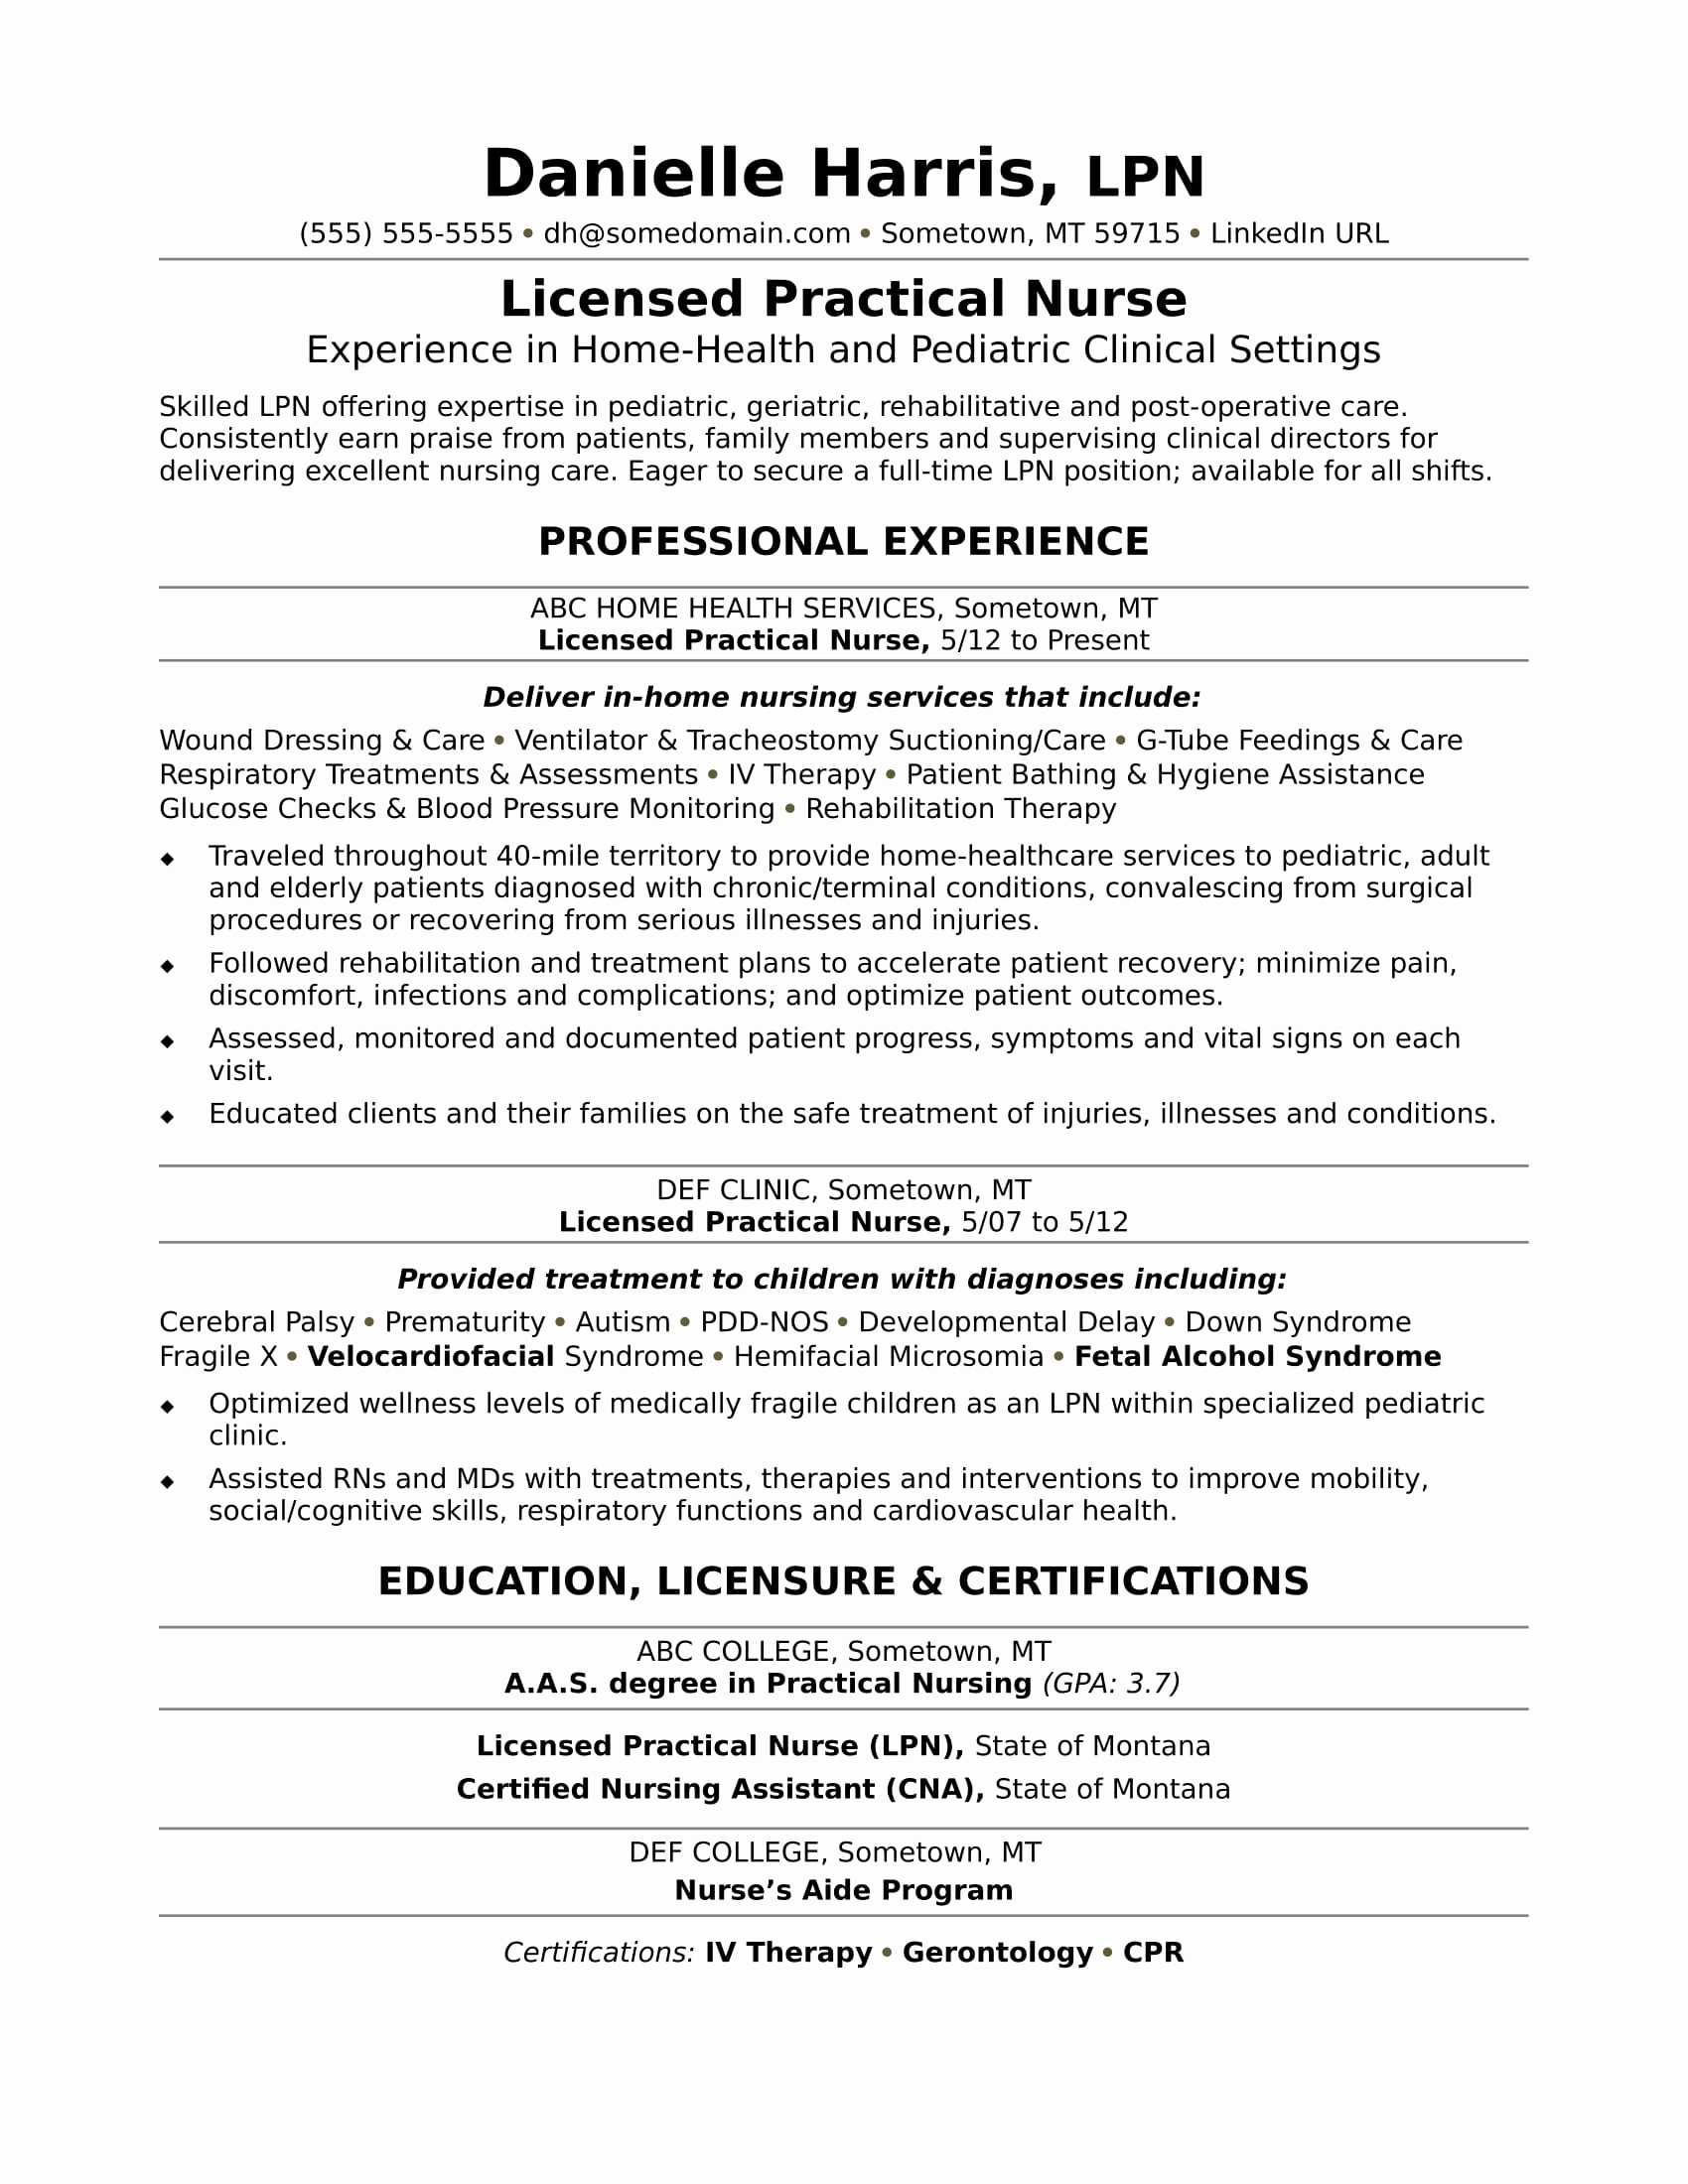 sample resume licensed practical nurse